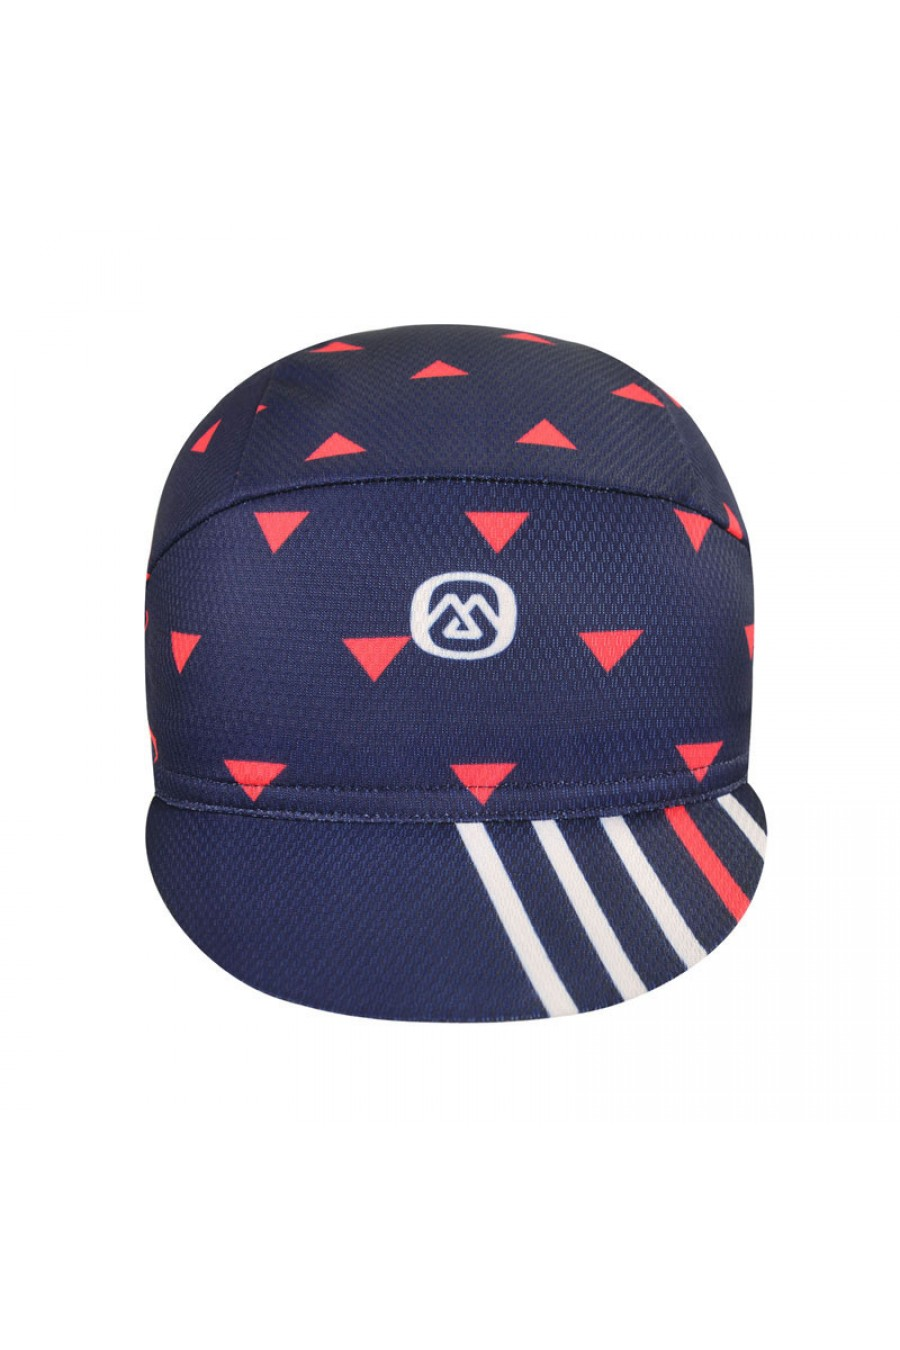 Polyester Cycling Cap Wicks And Breathes Well For Riding